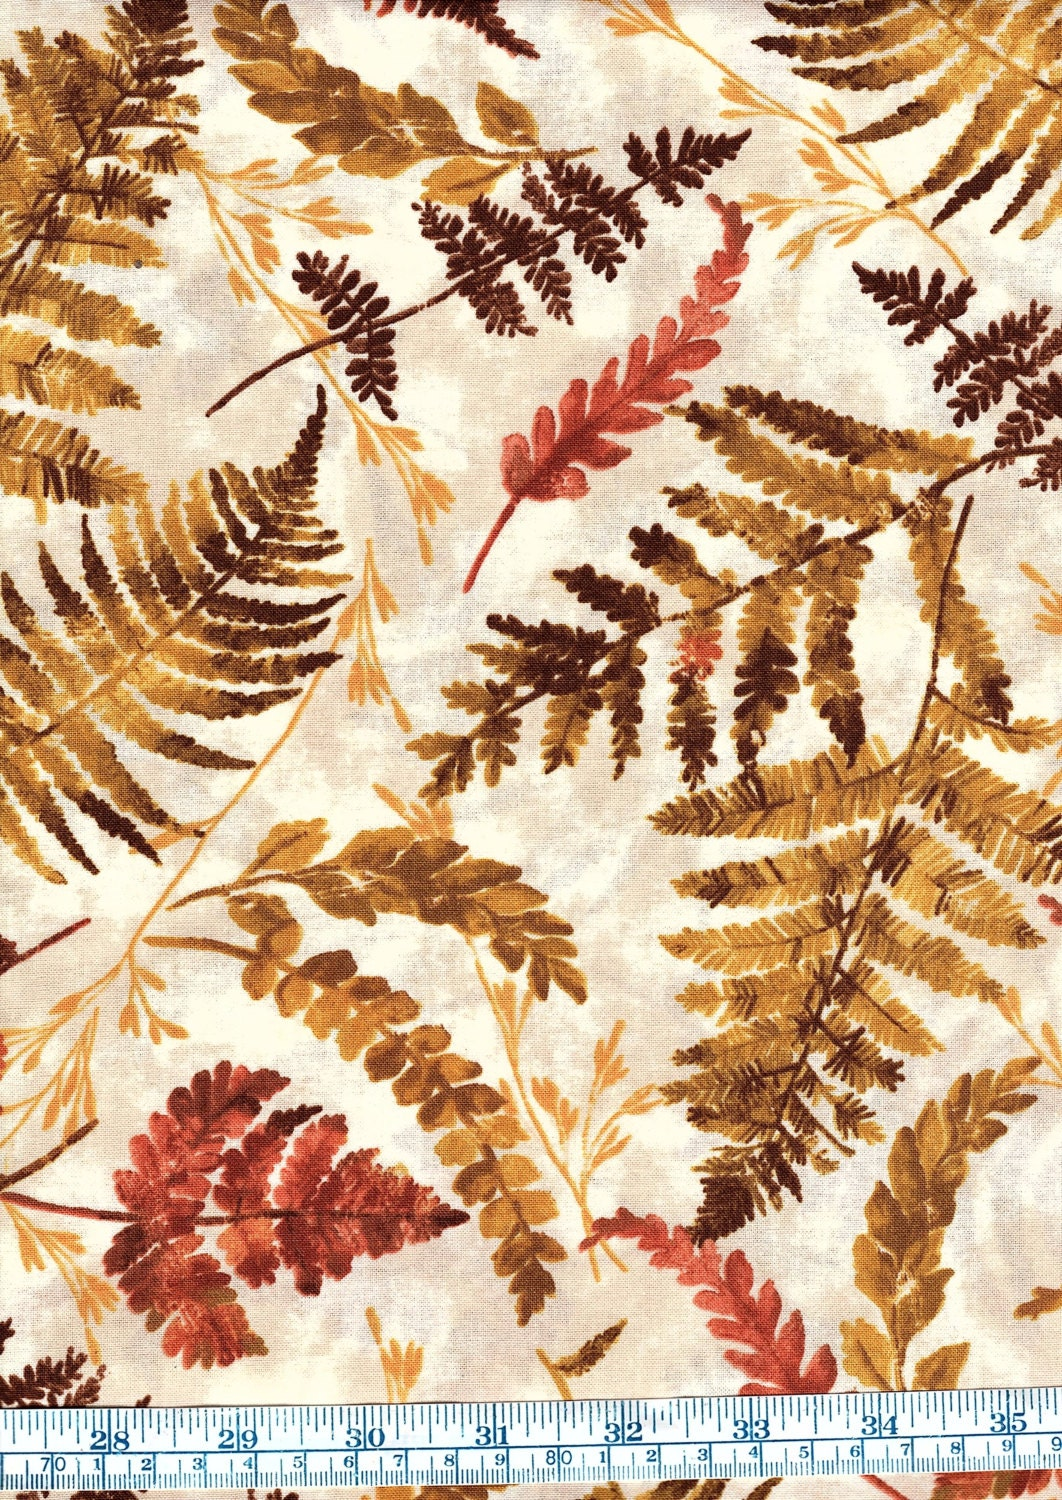 Fat Quarter Harvest Fall Autumn Mixed Leaves 100% Cotton ...